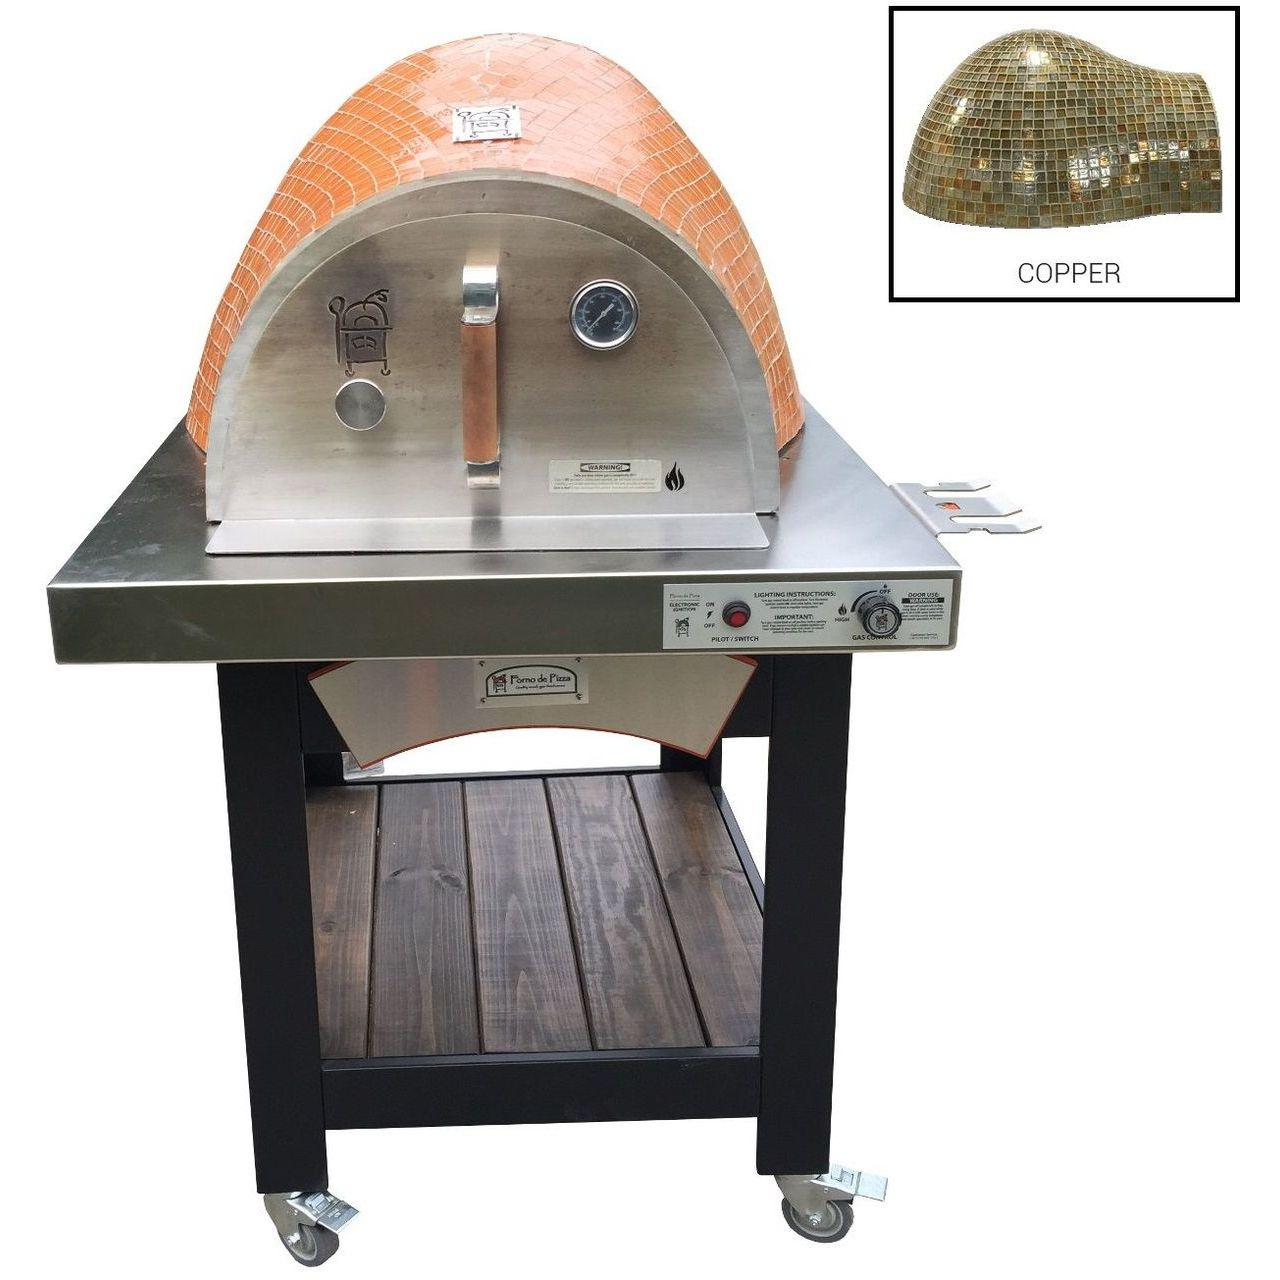 HPC Forno Hybrid Gas/Wood Oven With EI & Cart in Copper - LP